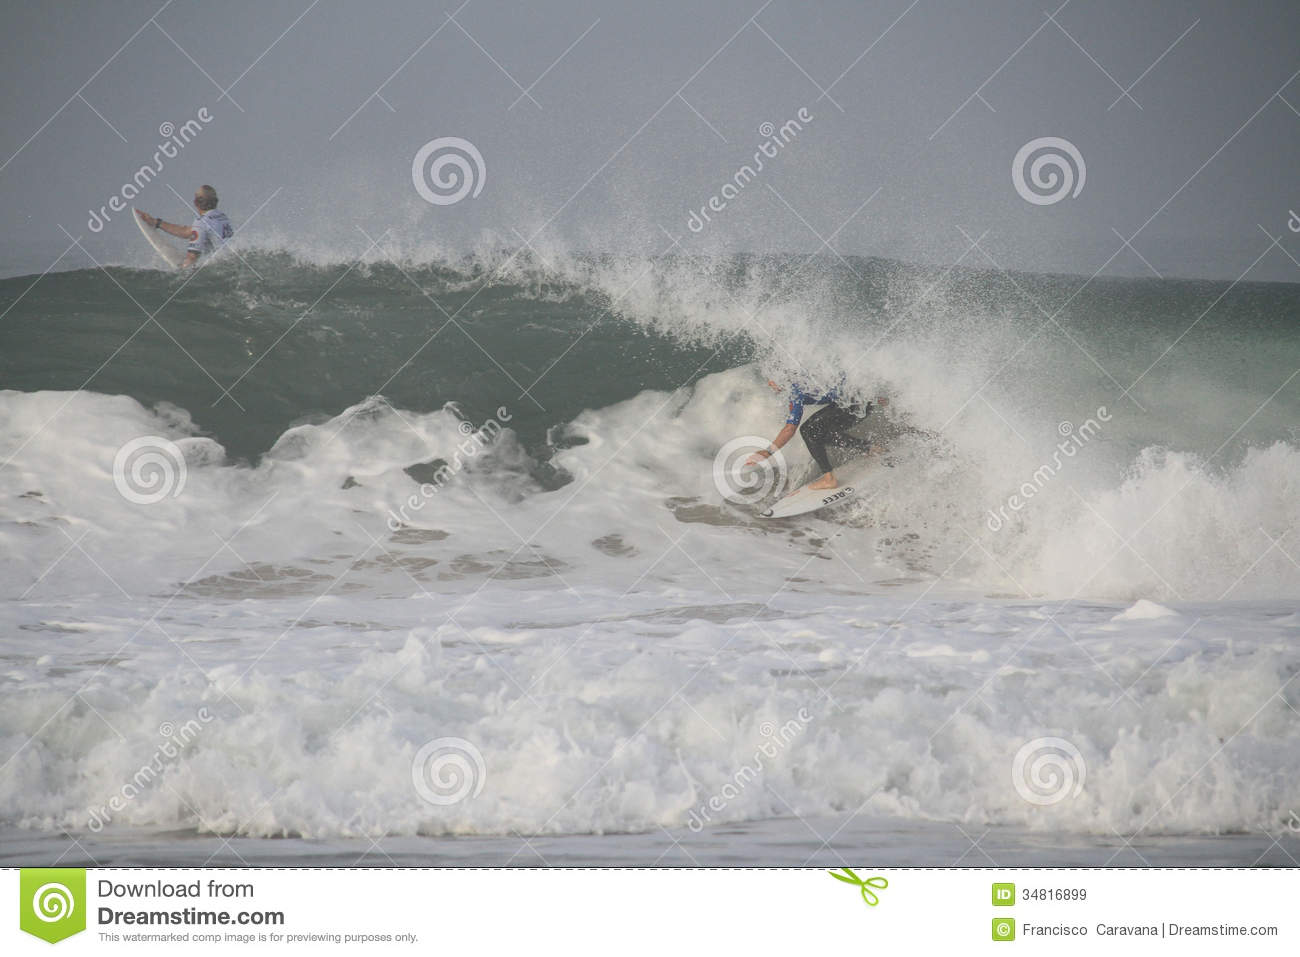 Fanning tube riding a wave